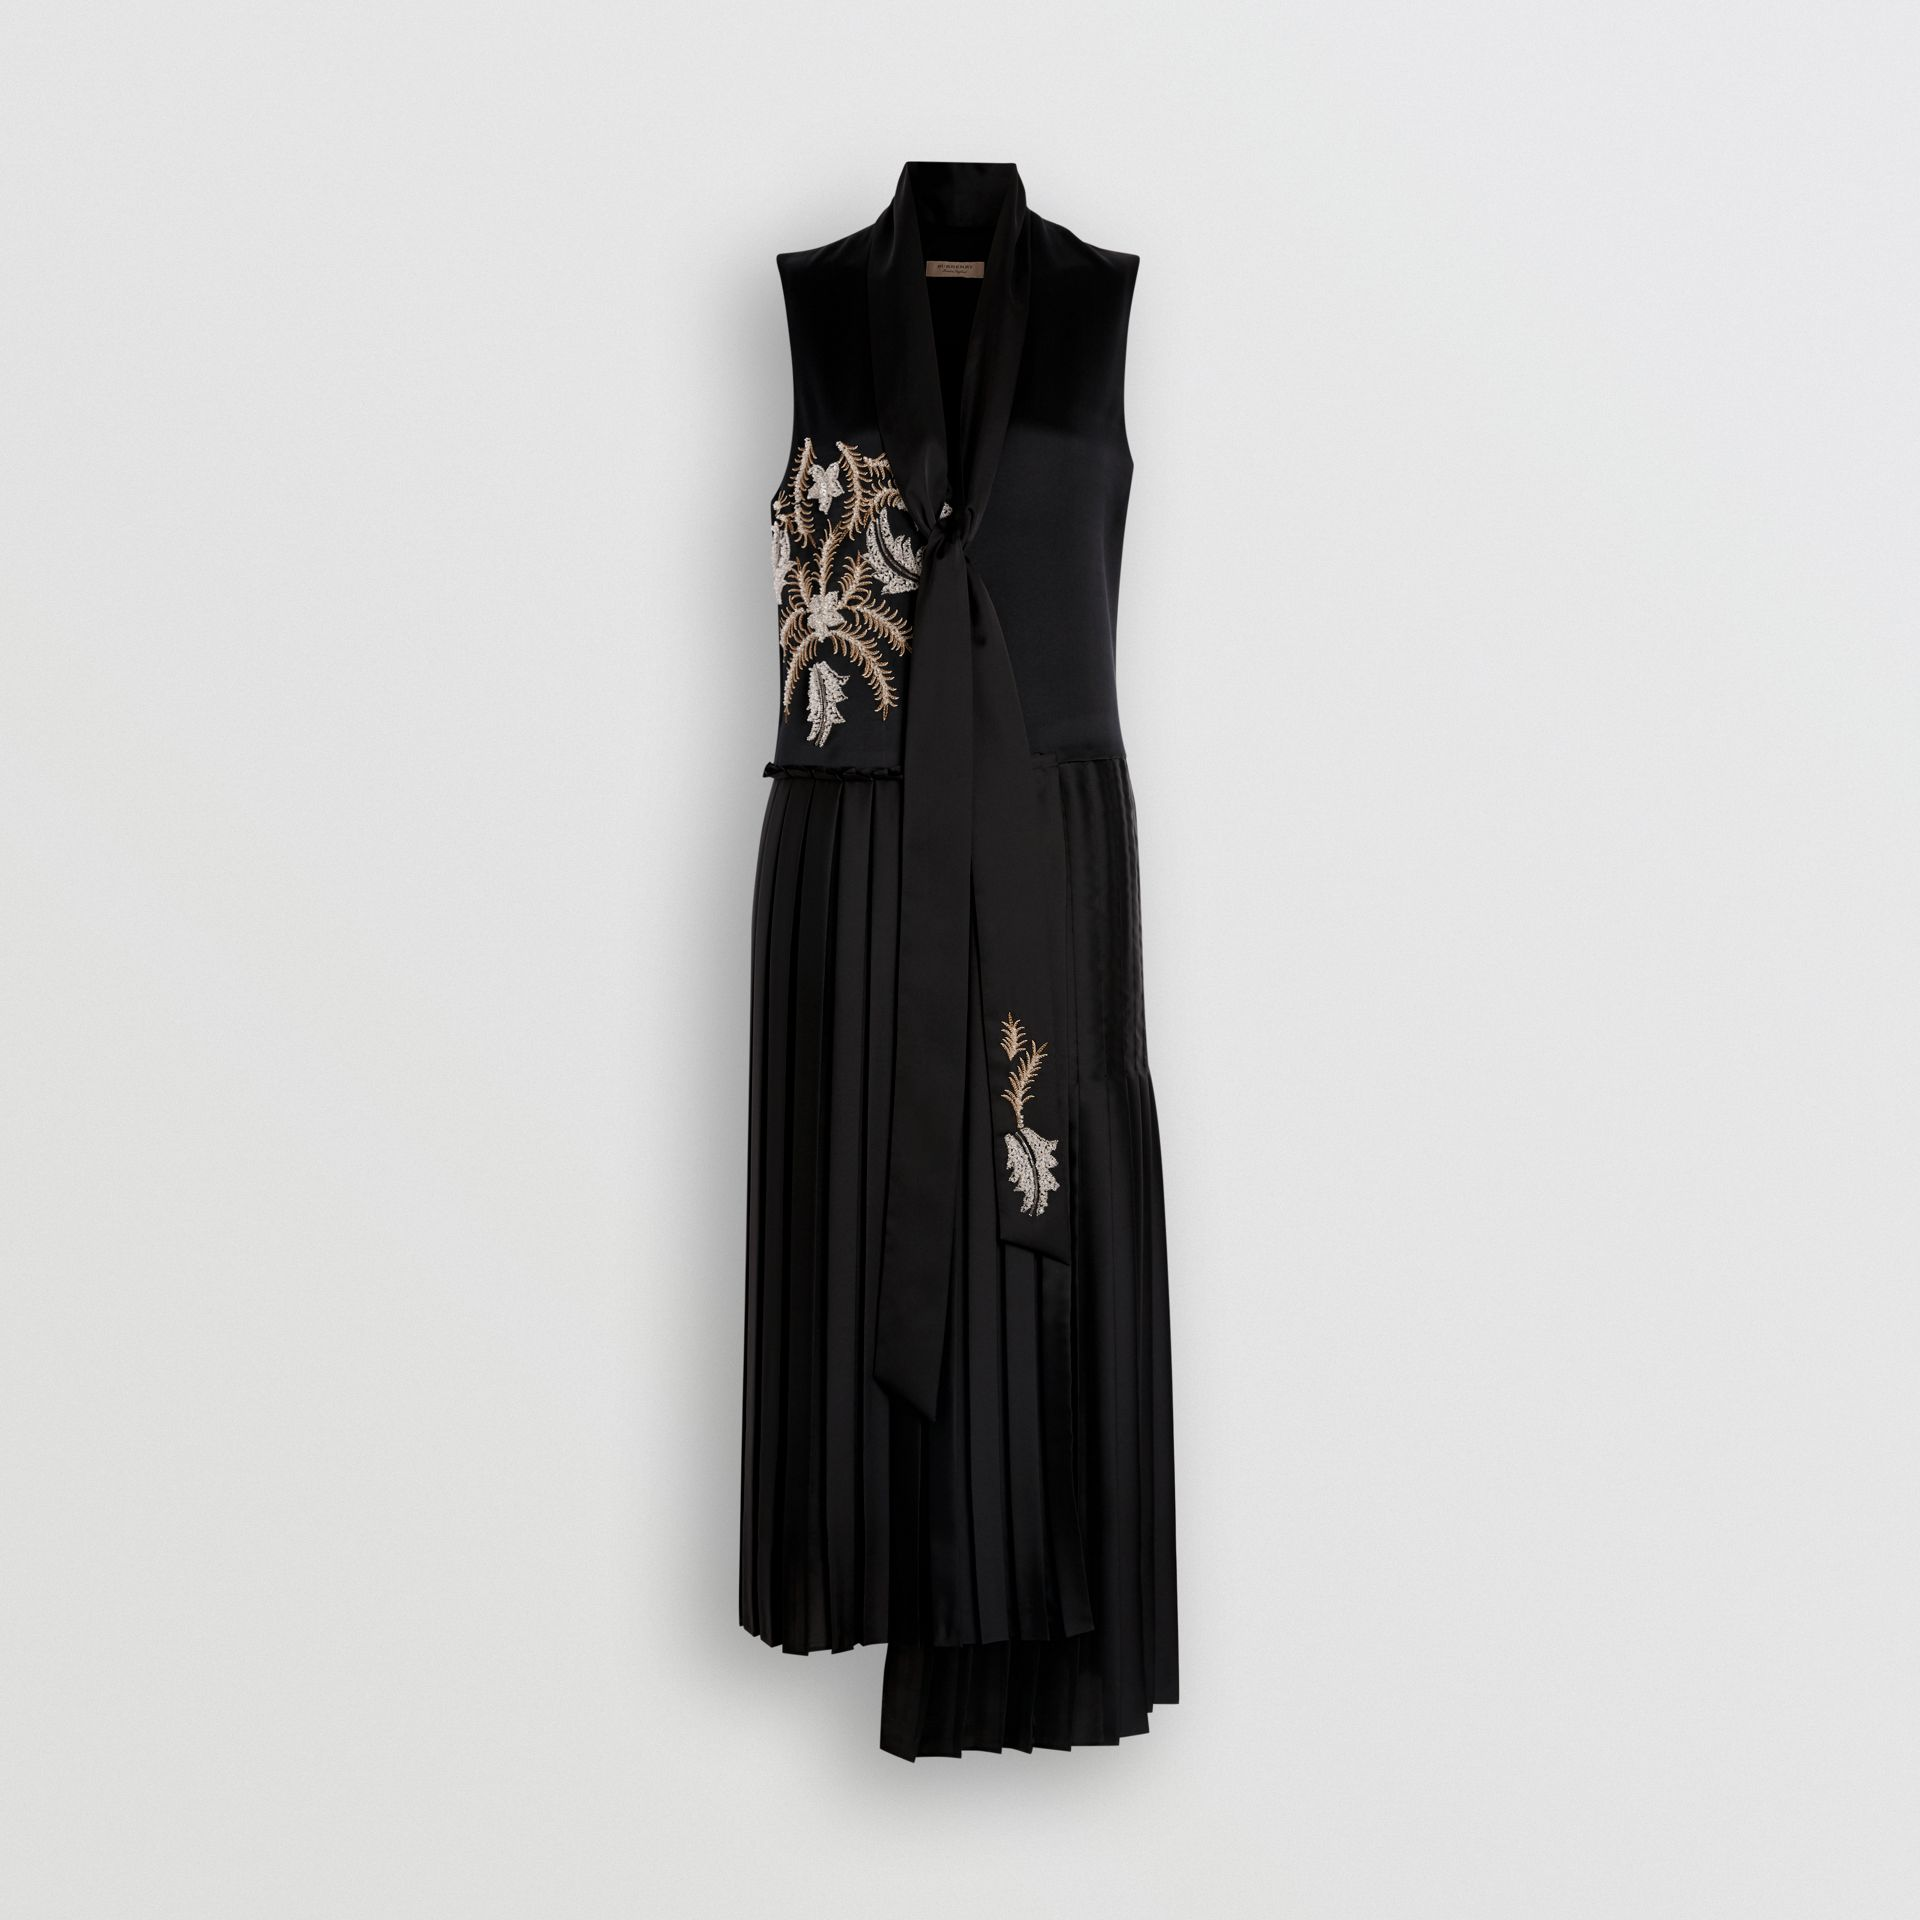 Bead-embellished Silk Satin Asymmetric Dress in Black - Women | Burberry Canada - gallery image 3